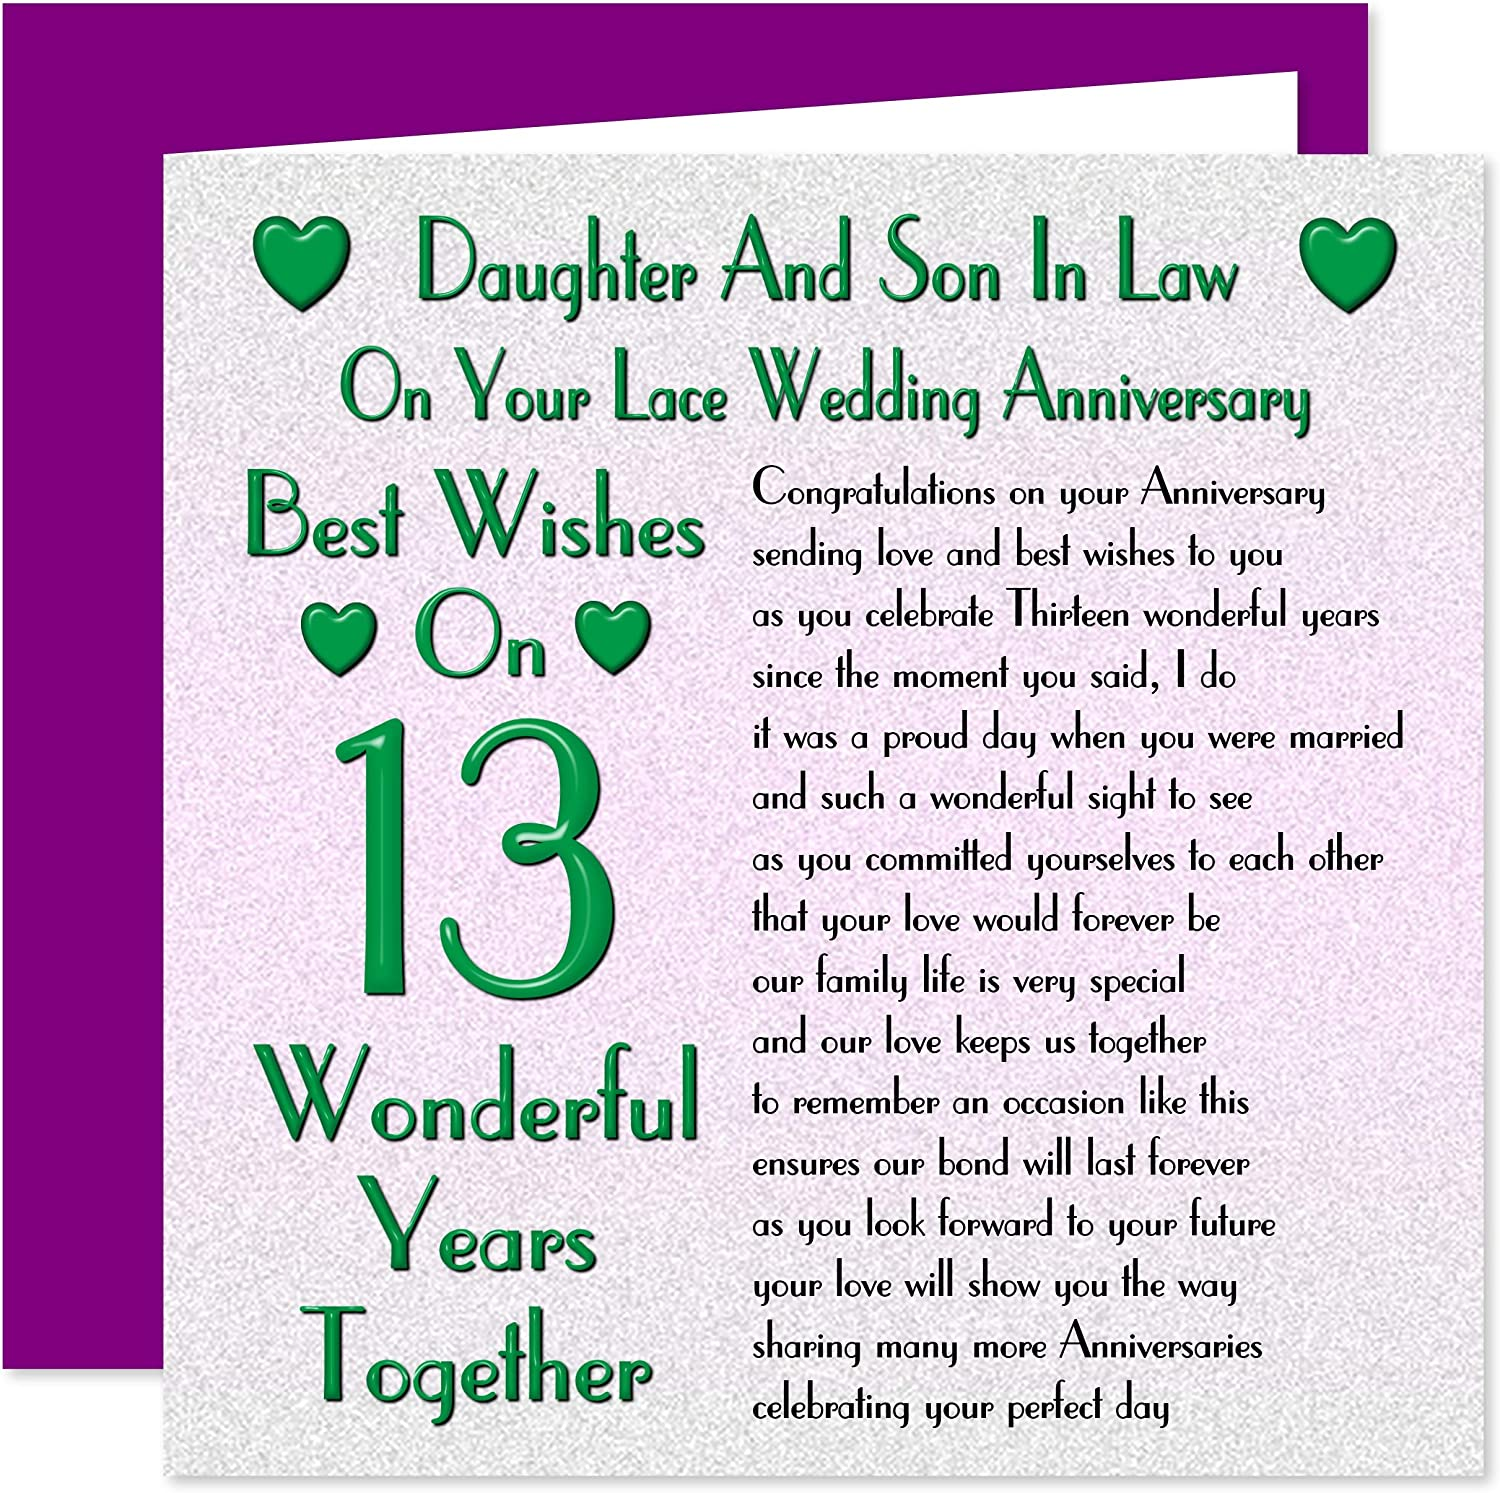 Daughter Son In Law 13th Wedding Anniversary Card On Your Lace Anniversary 13 Years Sentimental Verse Amazon Co Uk Office Products